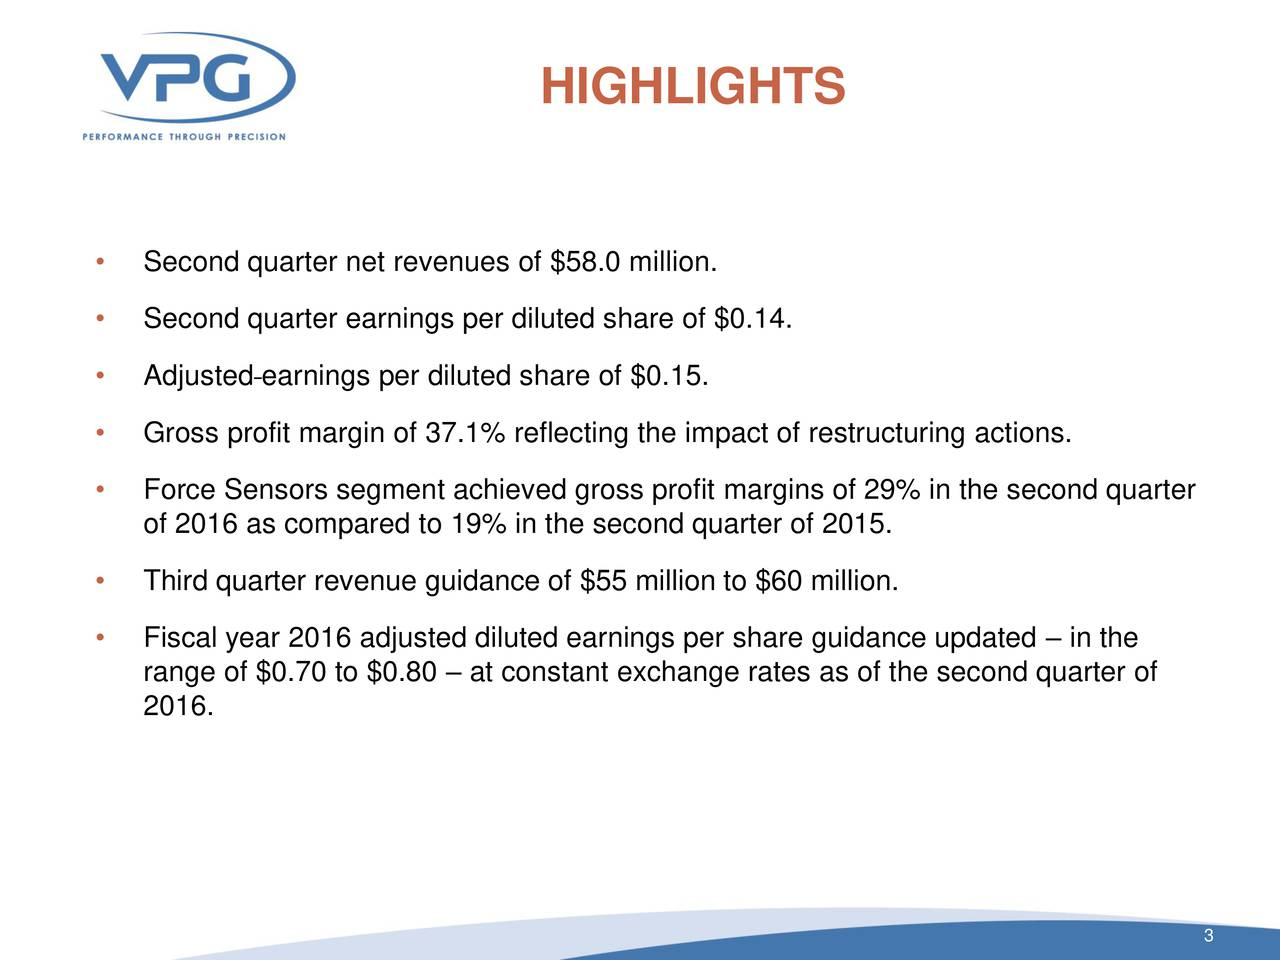 Second quarter net revenues of $58.0 million. Second quarter earnings per diluted share of $0.14. Adjusted earnings per diluted share of $0.15. Gross profit margin of 37.1% reflecting the impact of restructuring actions. Force Sensors segment achieved gross profit margins of 29% in the second quarter of 2016 as compared to 19% in the second quarter of 2015. Third quarter revenue guidance of $55 million to $60 million. Fiscal year 2016 adjusted diluted earnings per share guidance updated  in the range of $0.70 to $0.80  at constant exchange rates as of the second quarter of 2016. 3